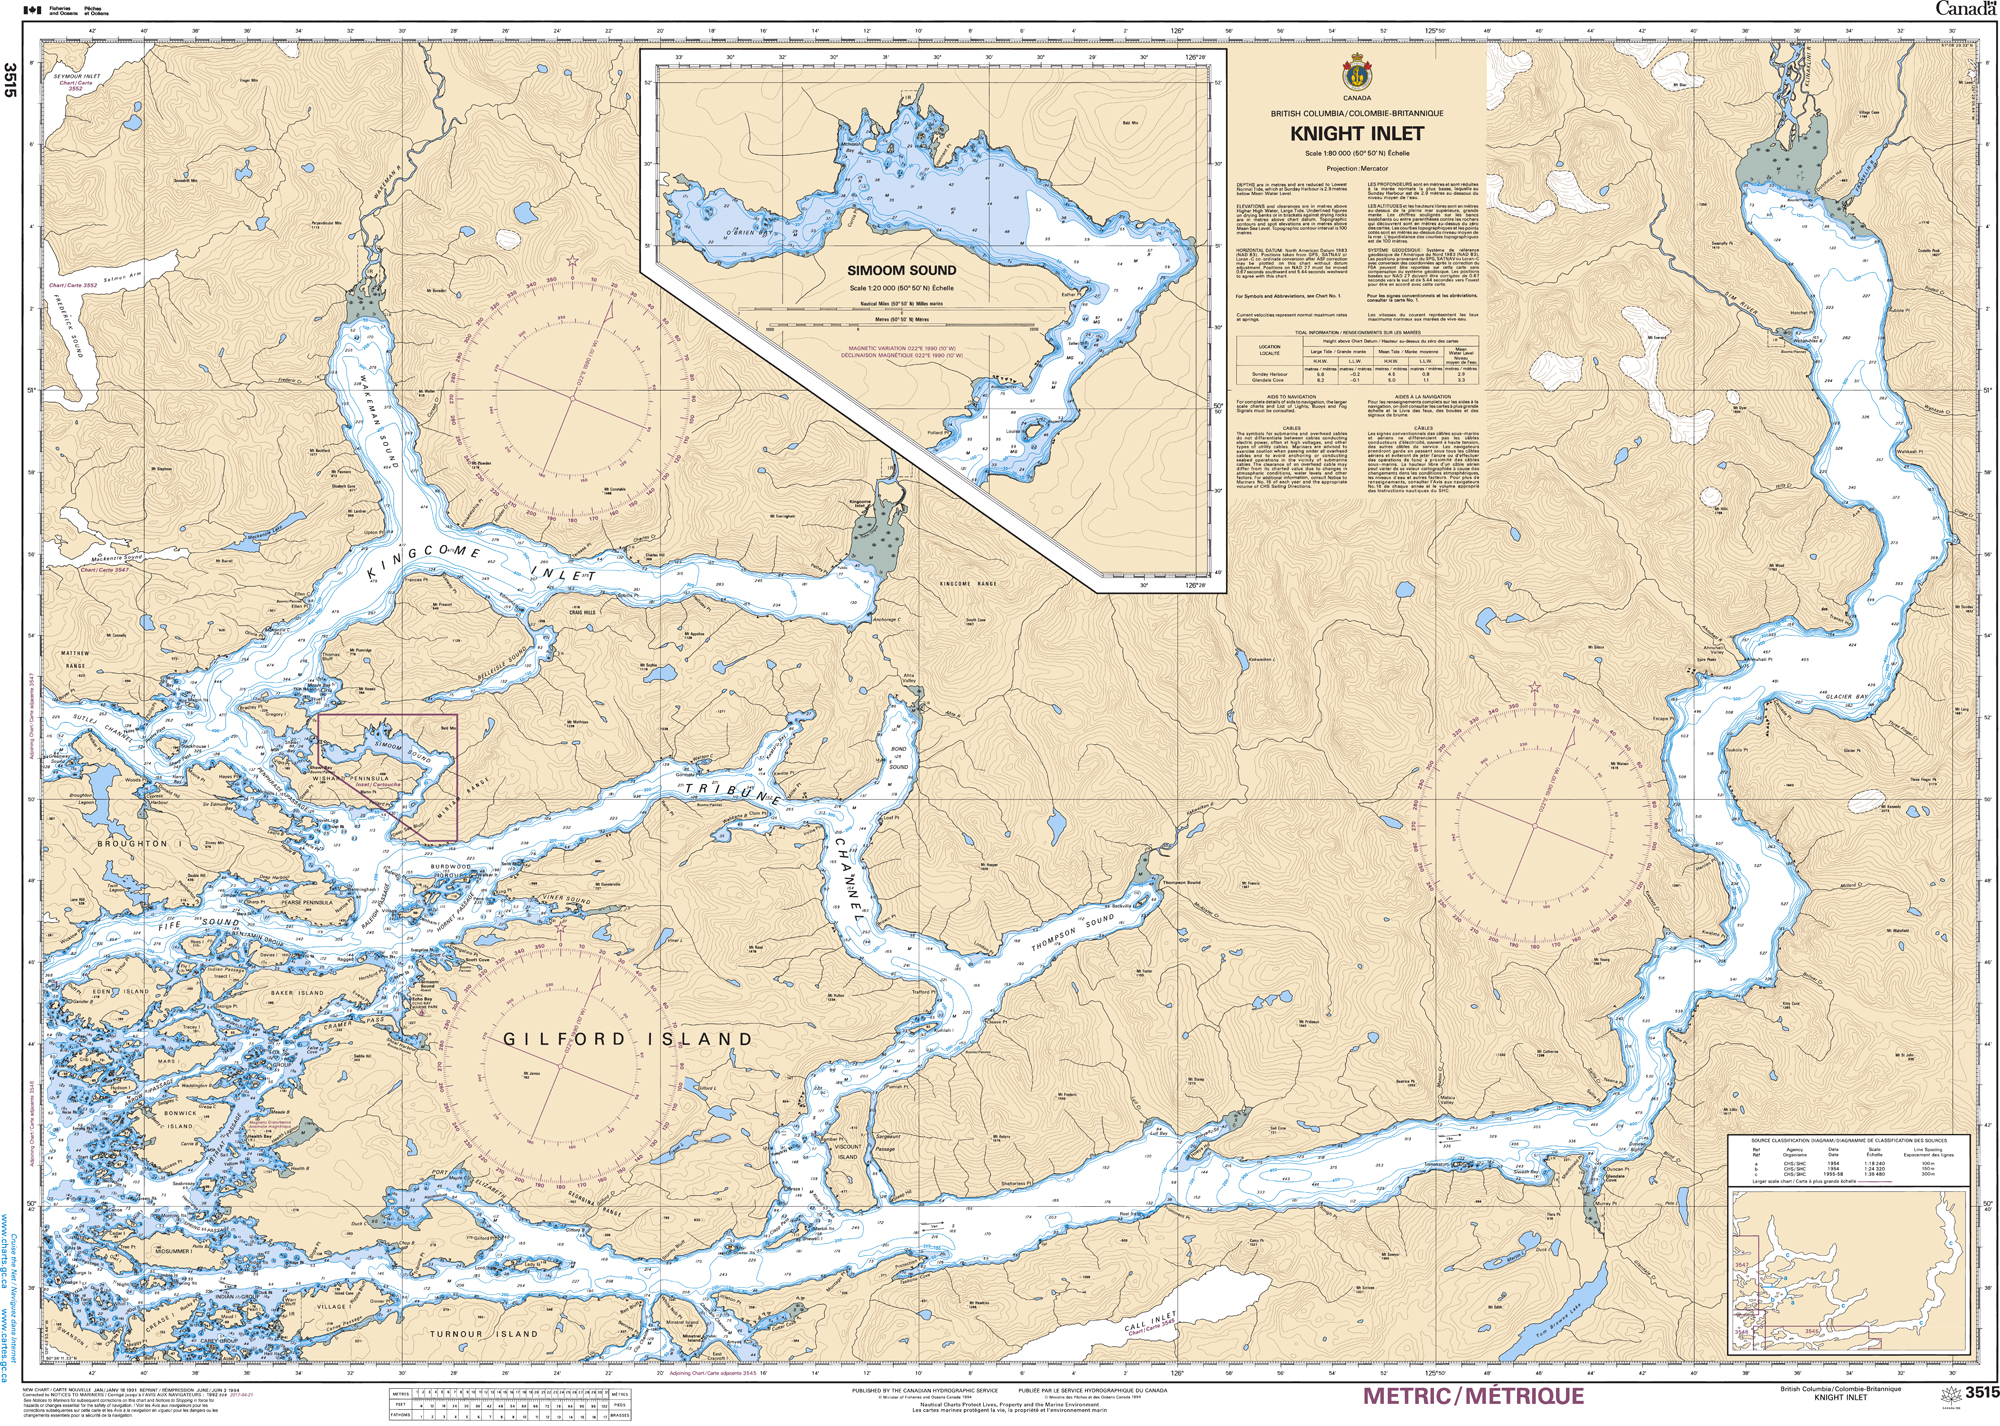 Pacific Region, CHS Chart 3515: Knight Inlet